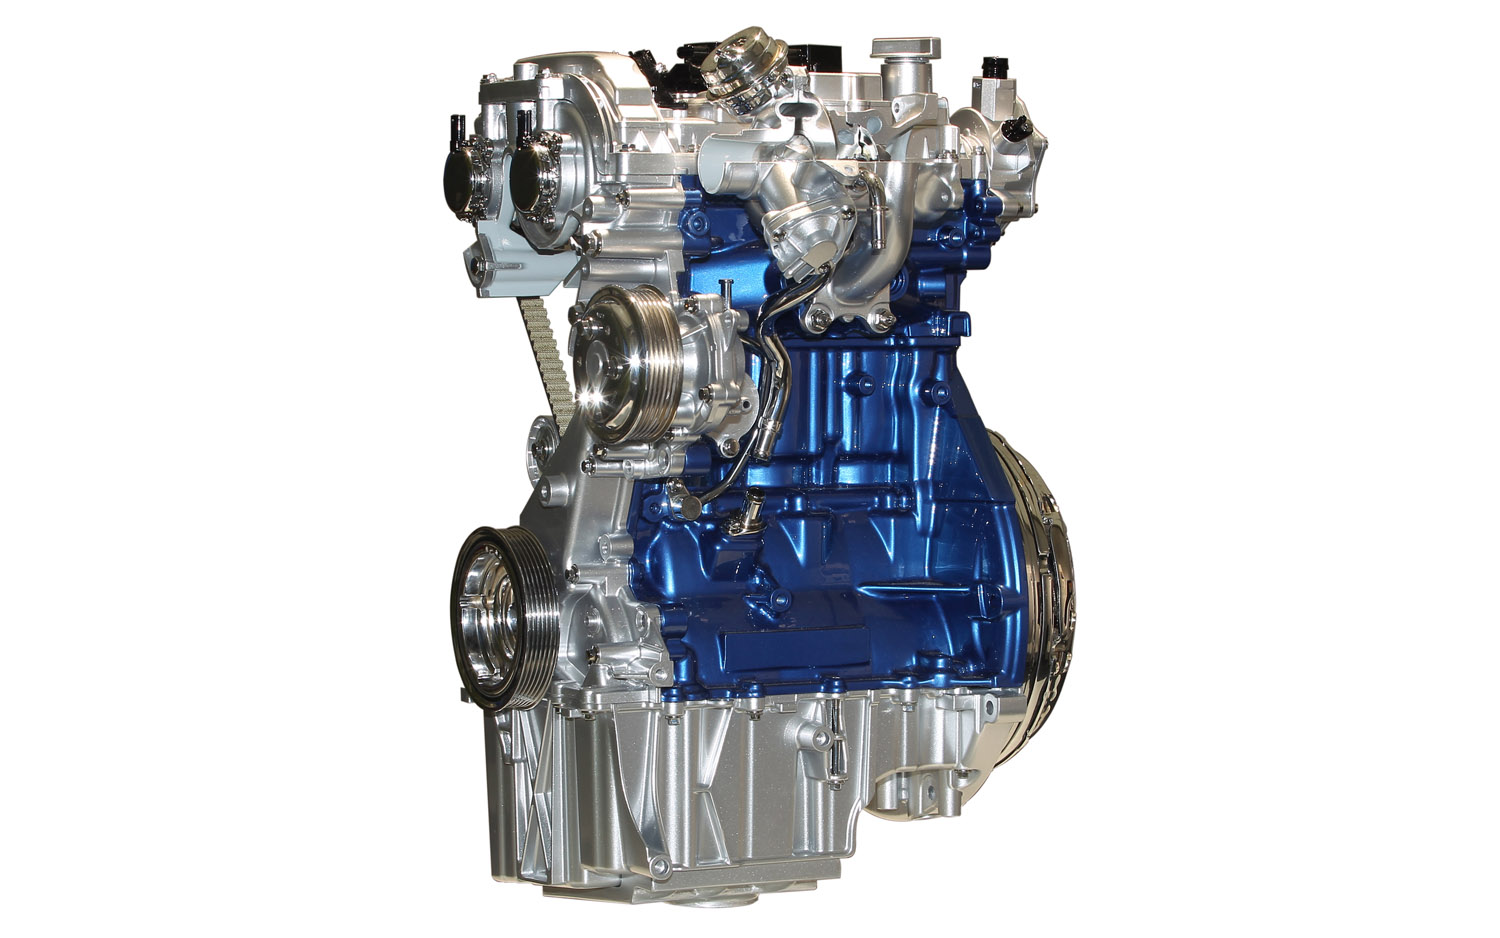 Ford takes the award for 2012 Engine of the Year